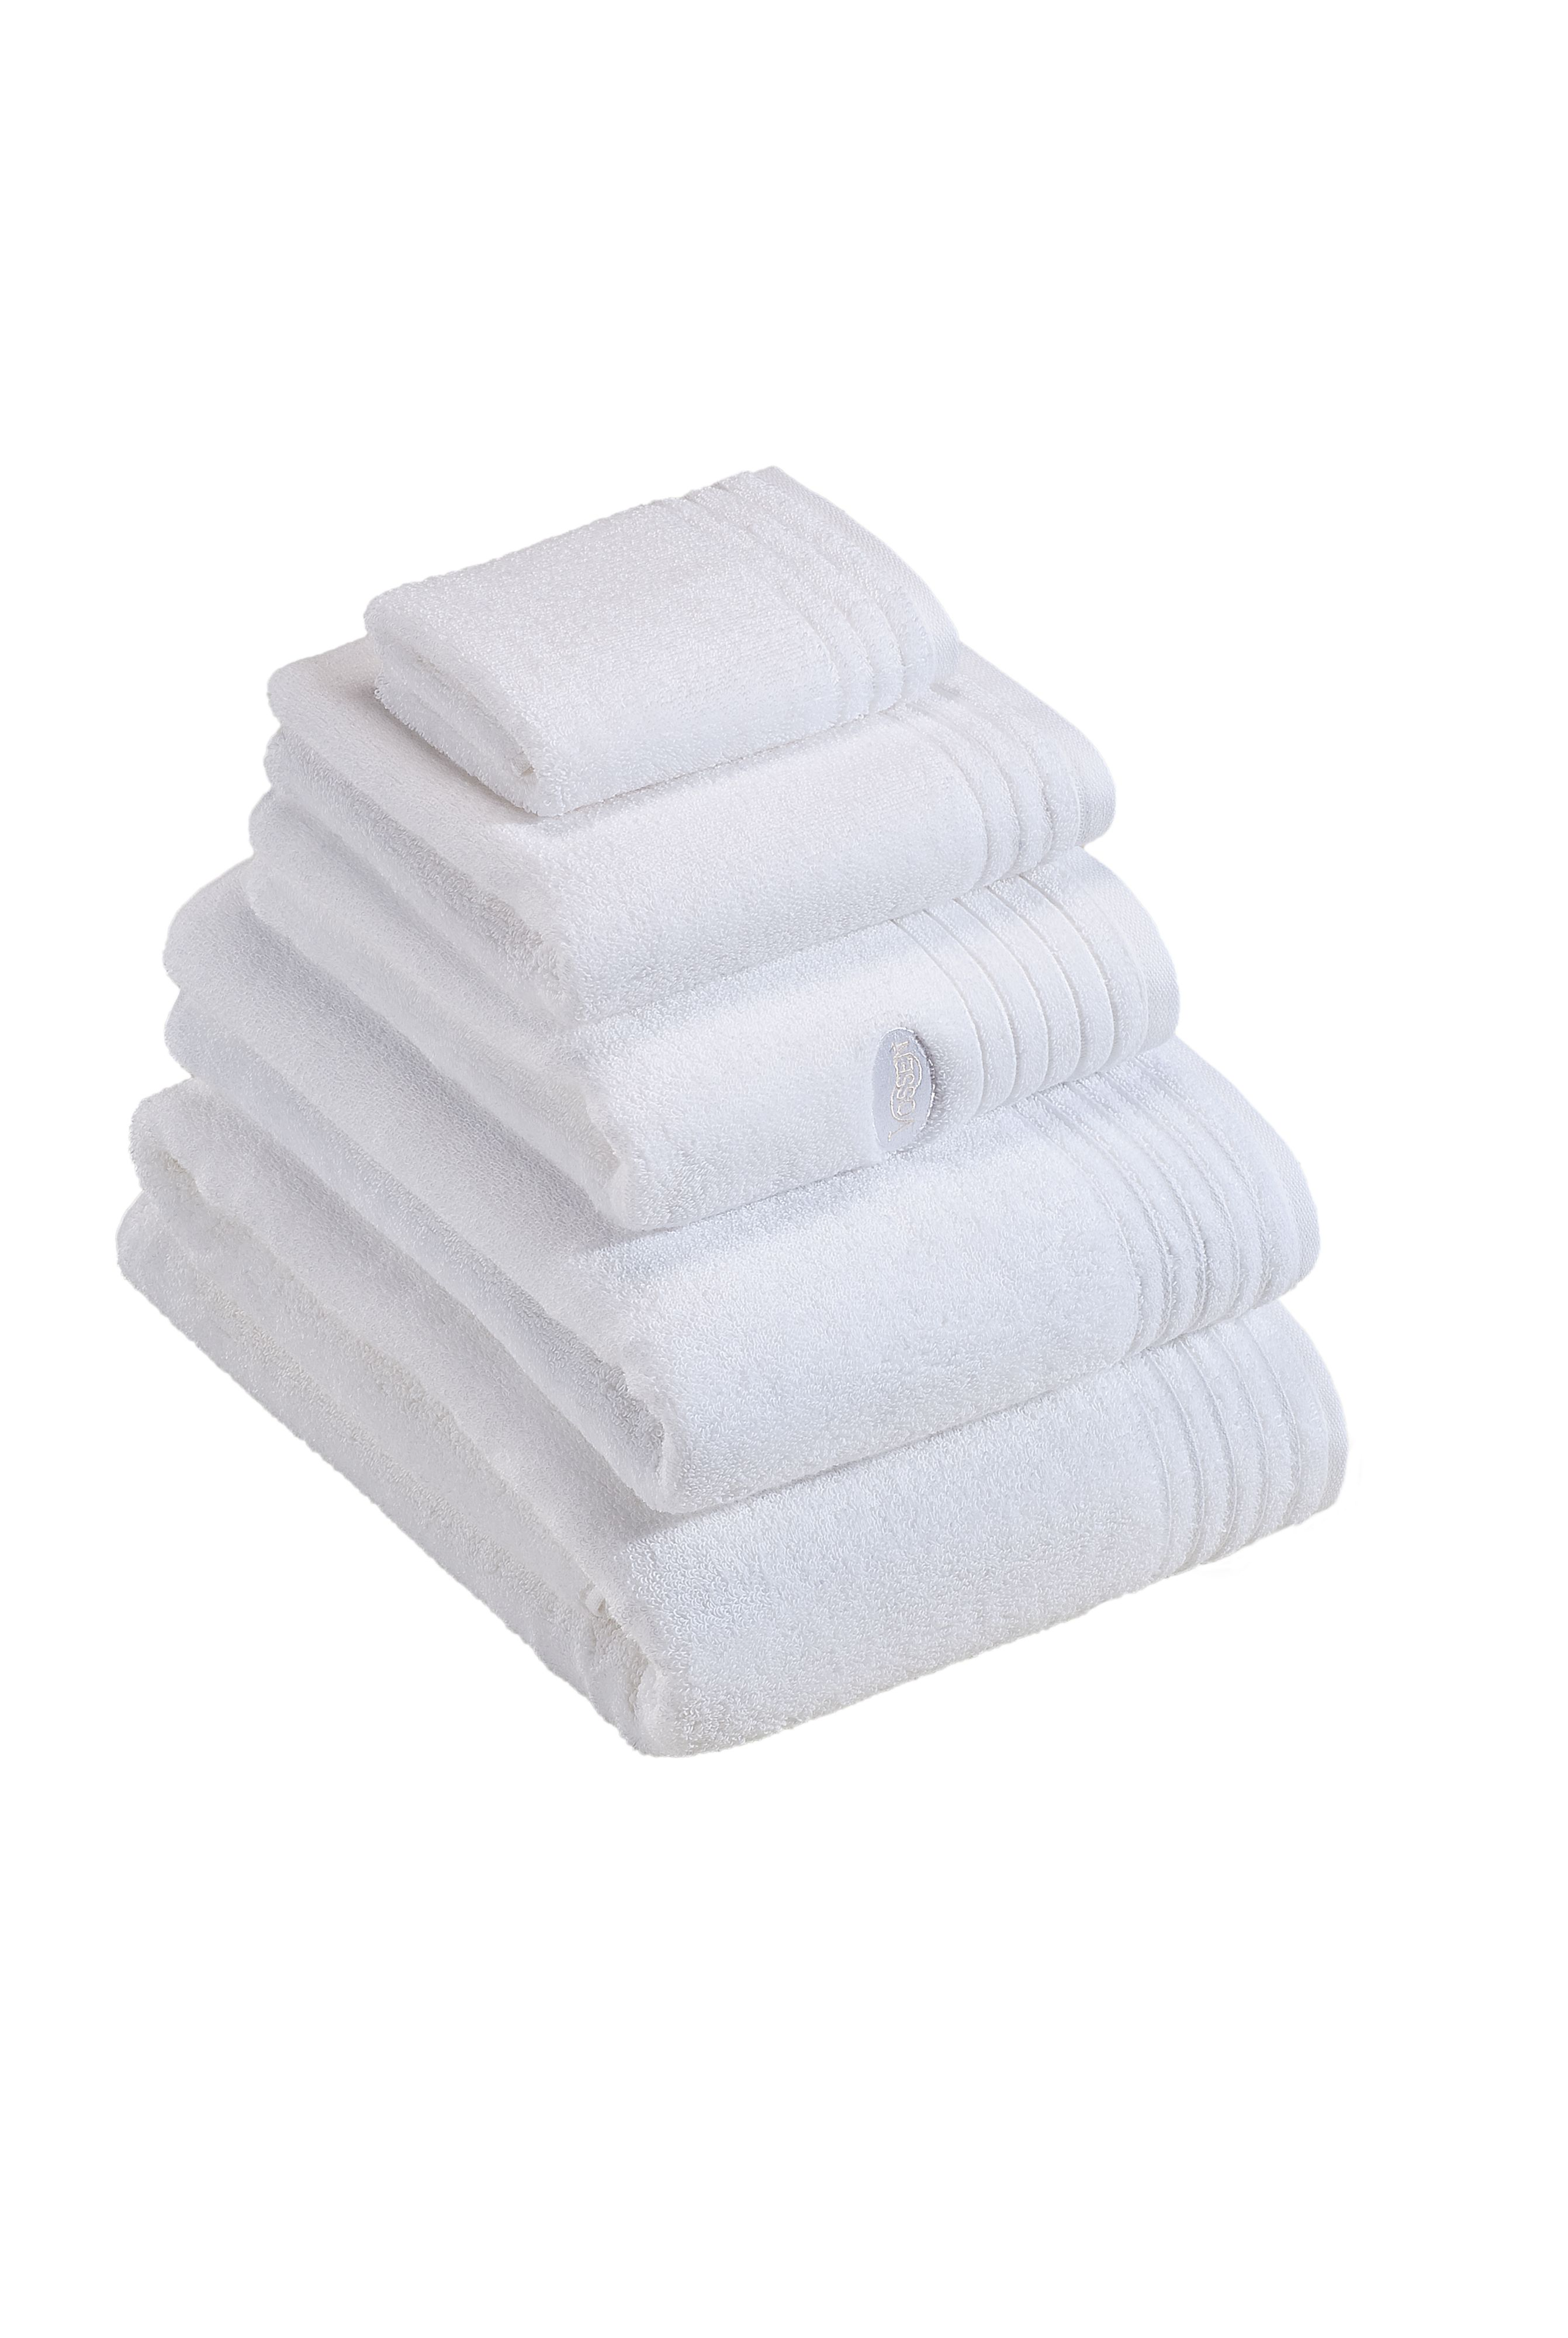 Dreams towel range in white